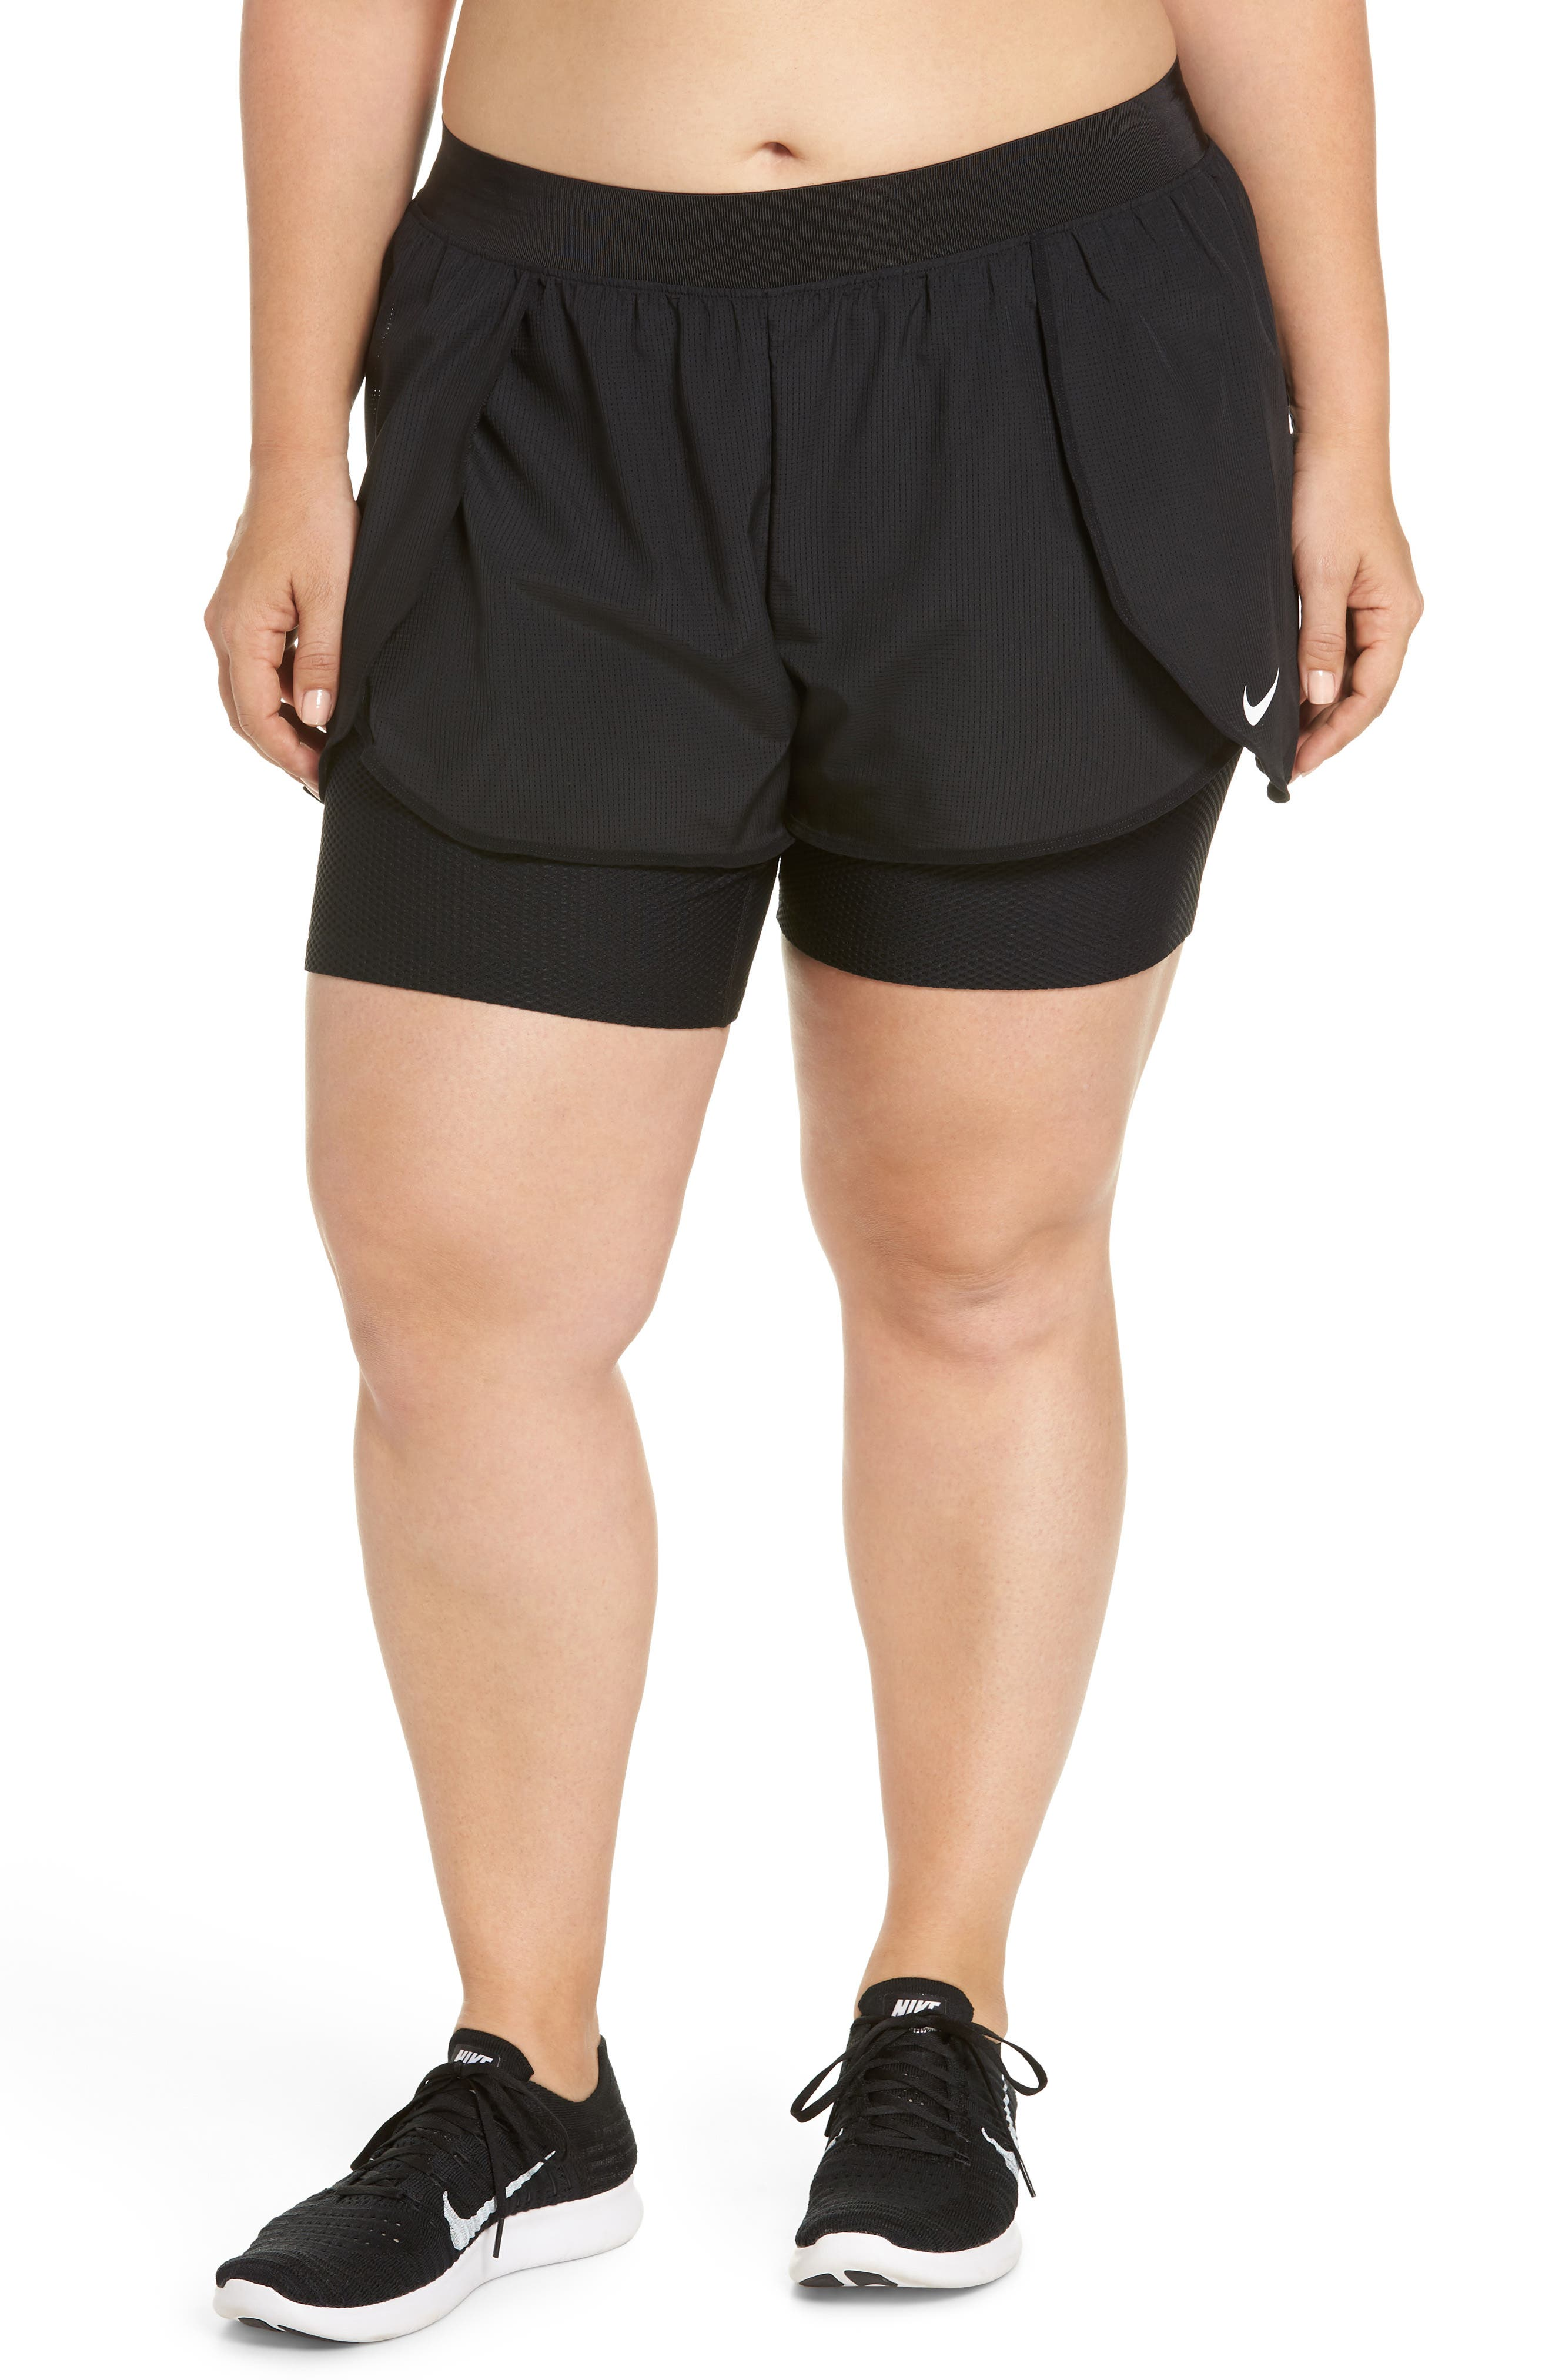 Flex Bliss 2-in-1 Training Shorts,                             Main thumbnail 1, color,                             010